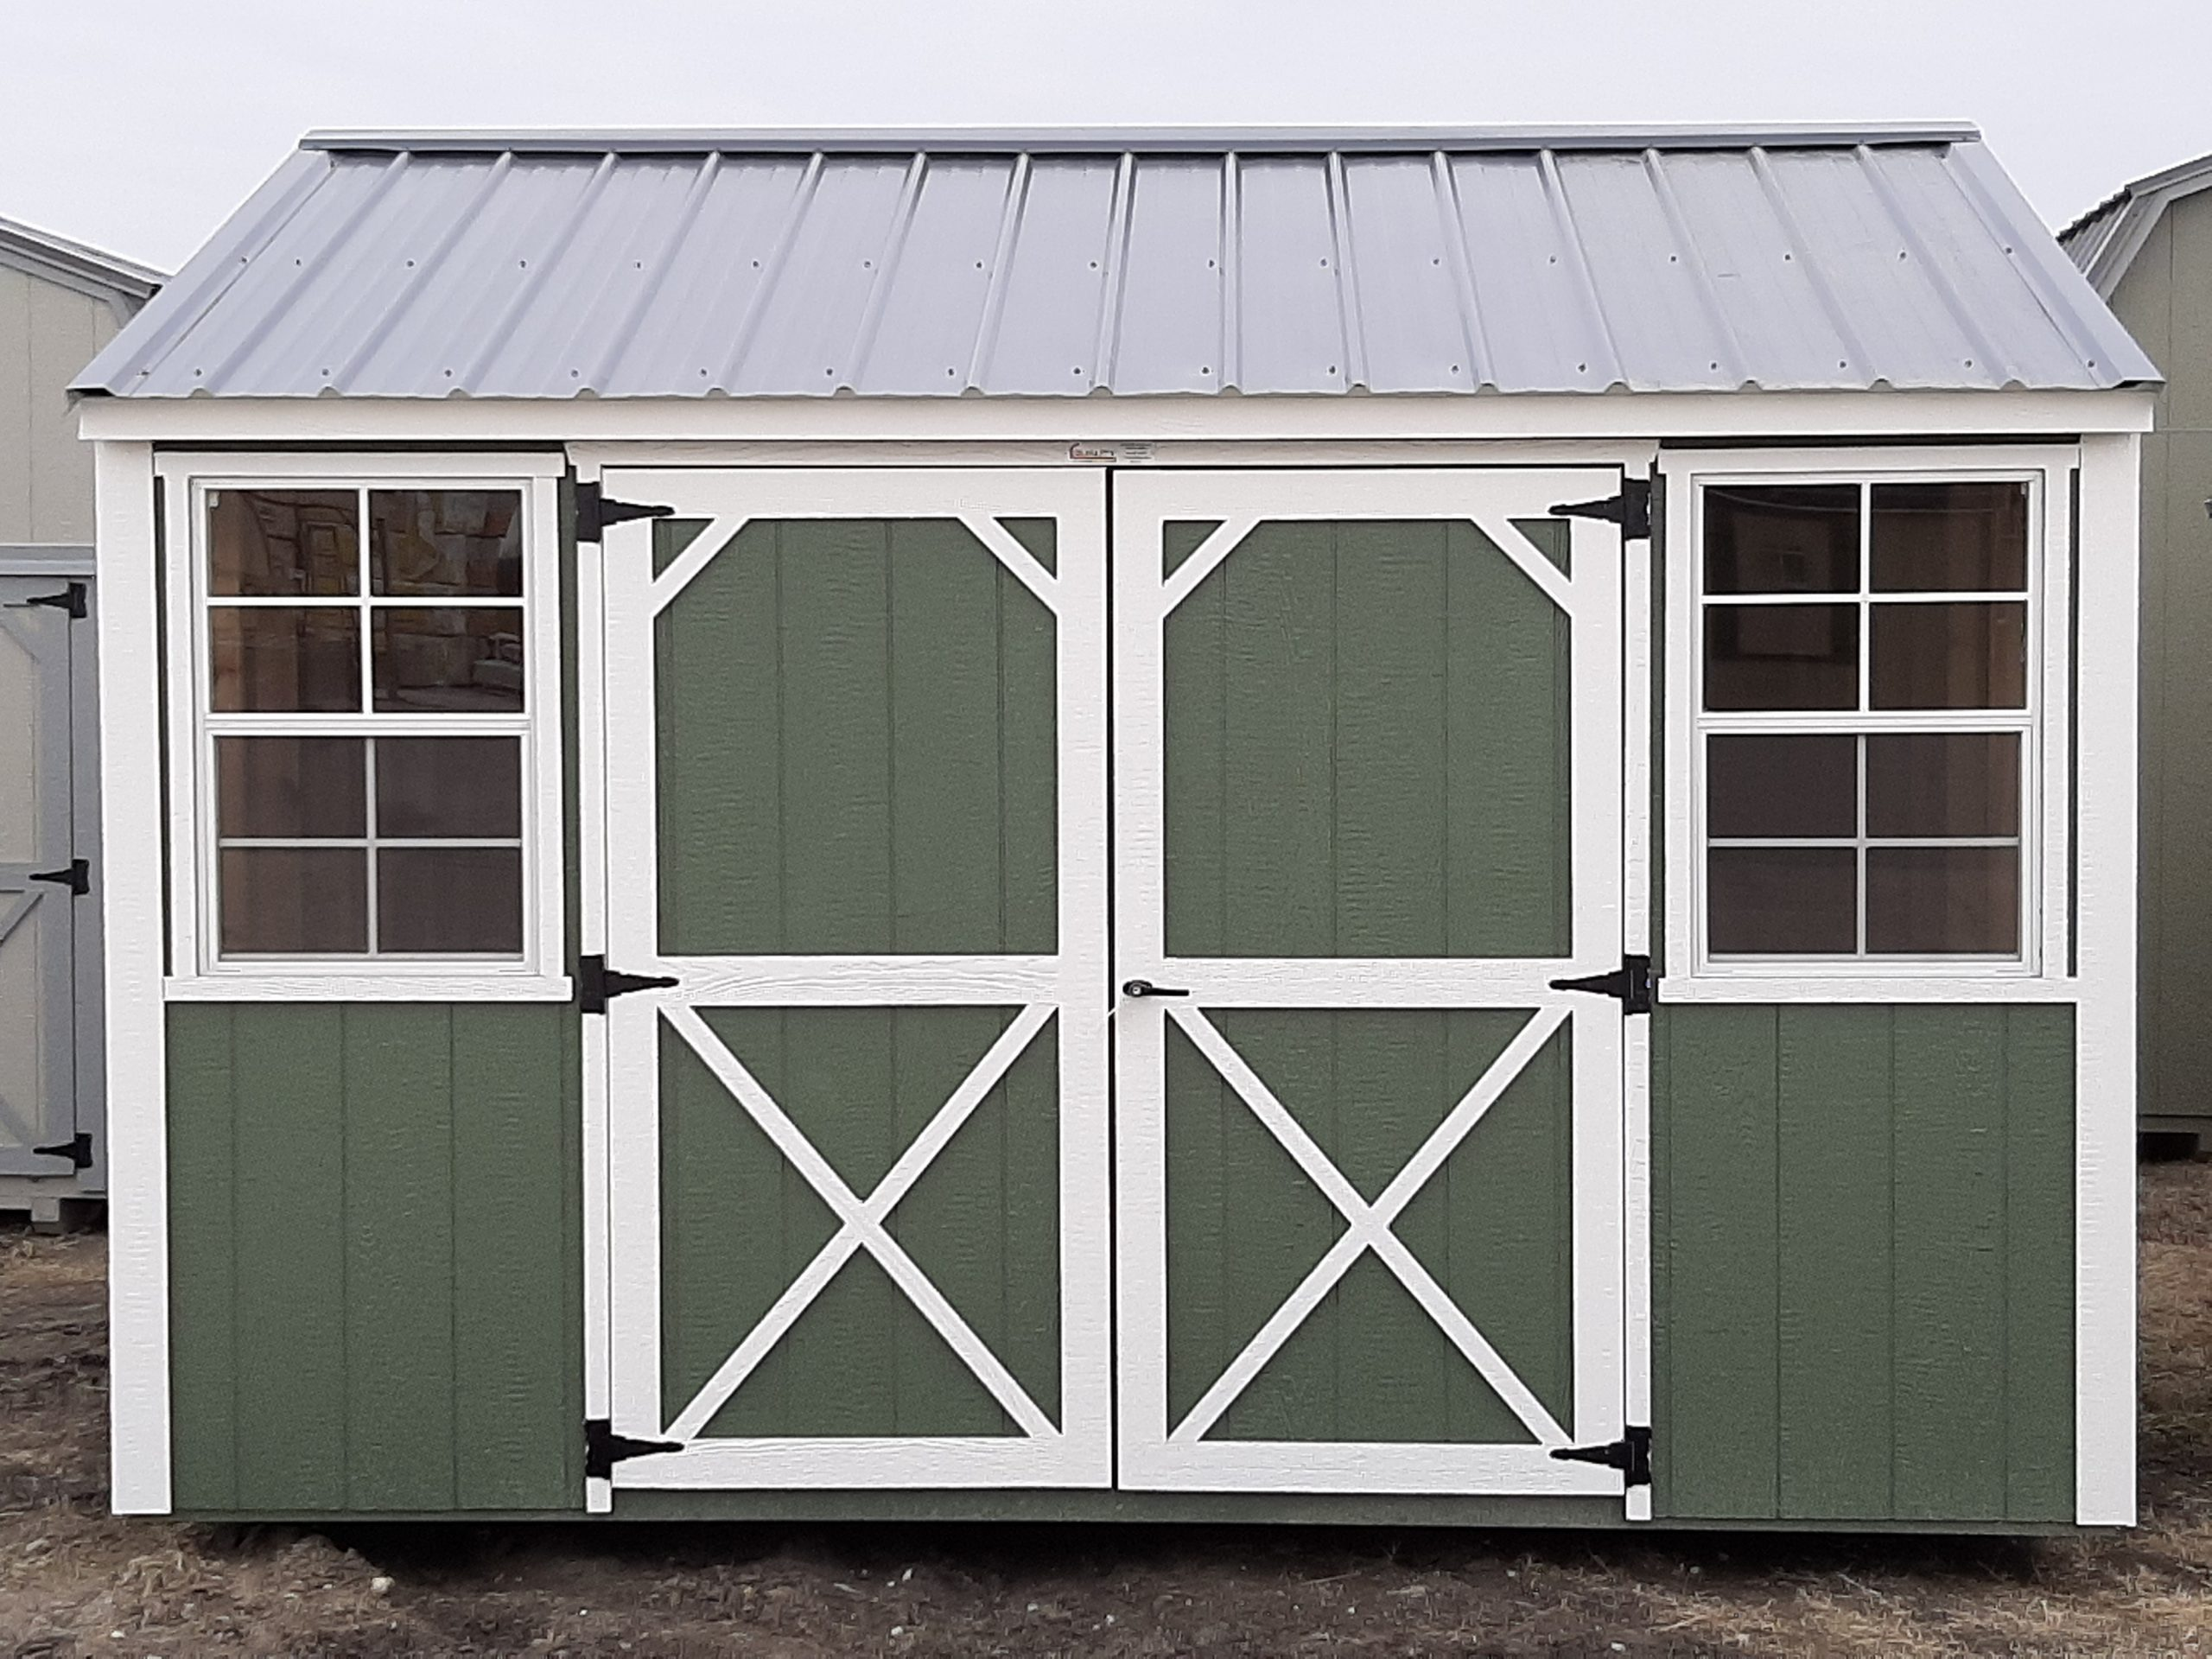 10x12 Garden Shed #2021 Image